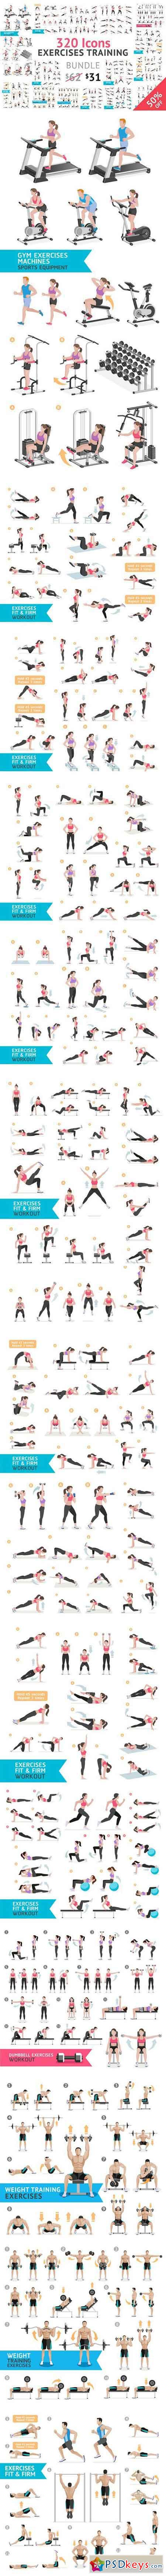 Fitness Aerobic and Exercises Icons 1063017